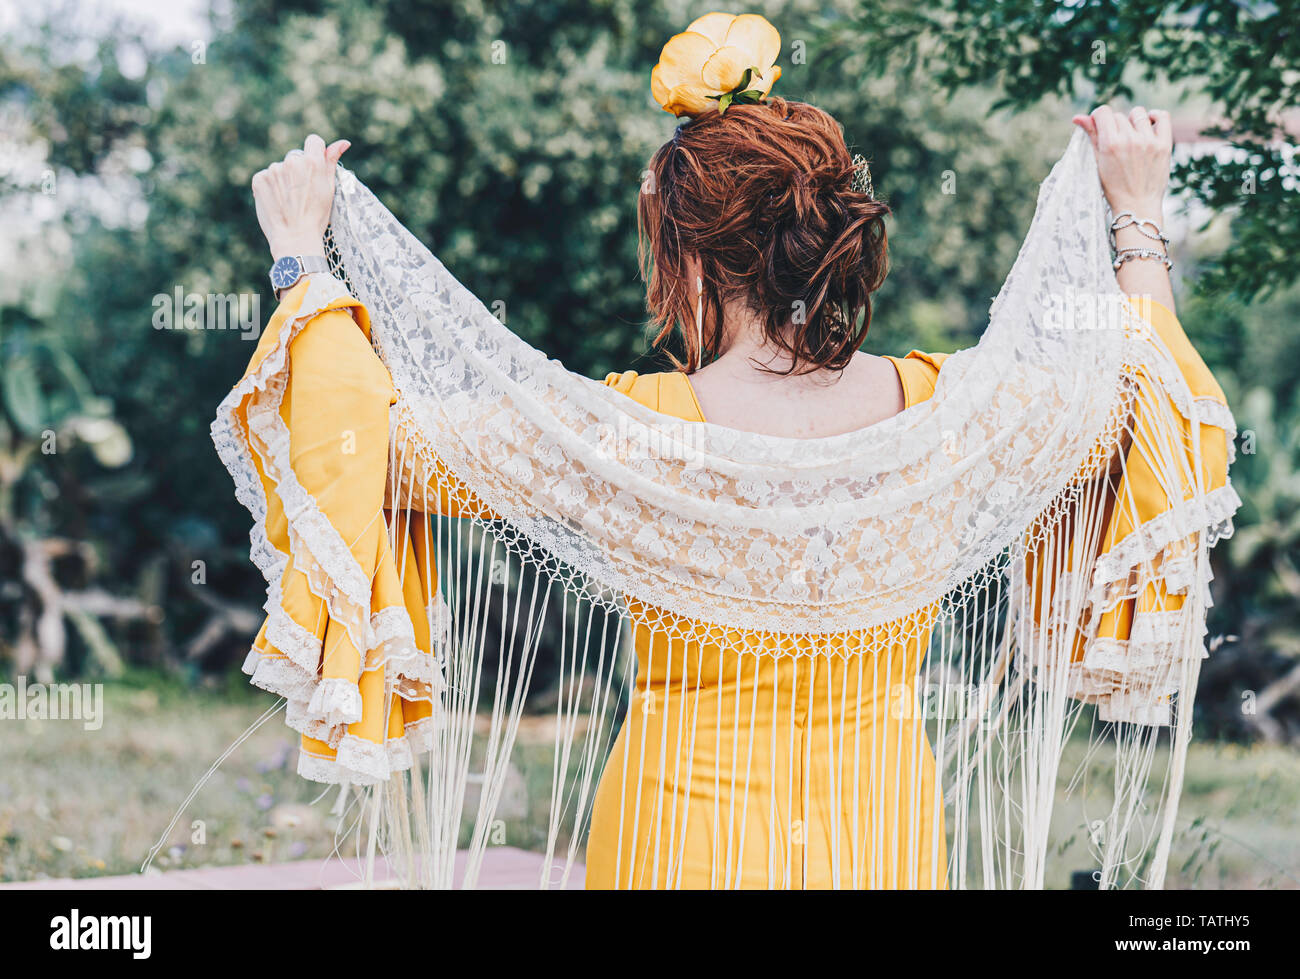 A back Spanish woman wearing a yellow traditional flamenco style dress standing with manila shawls with fringes - Stock Image